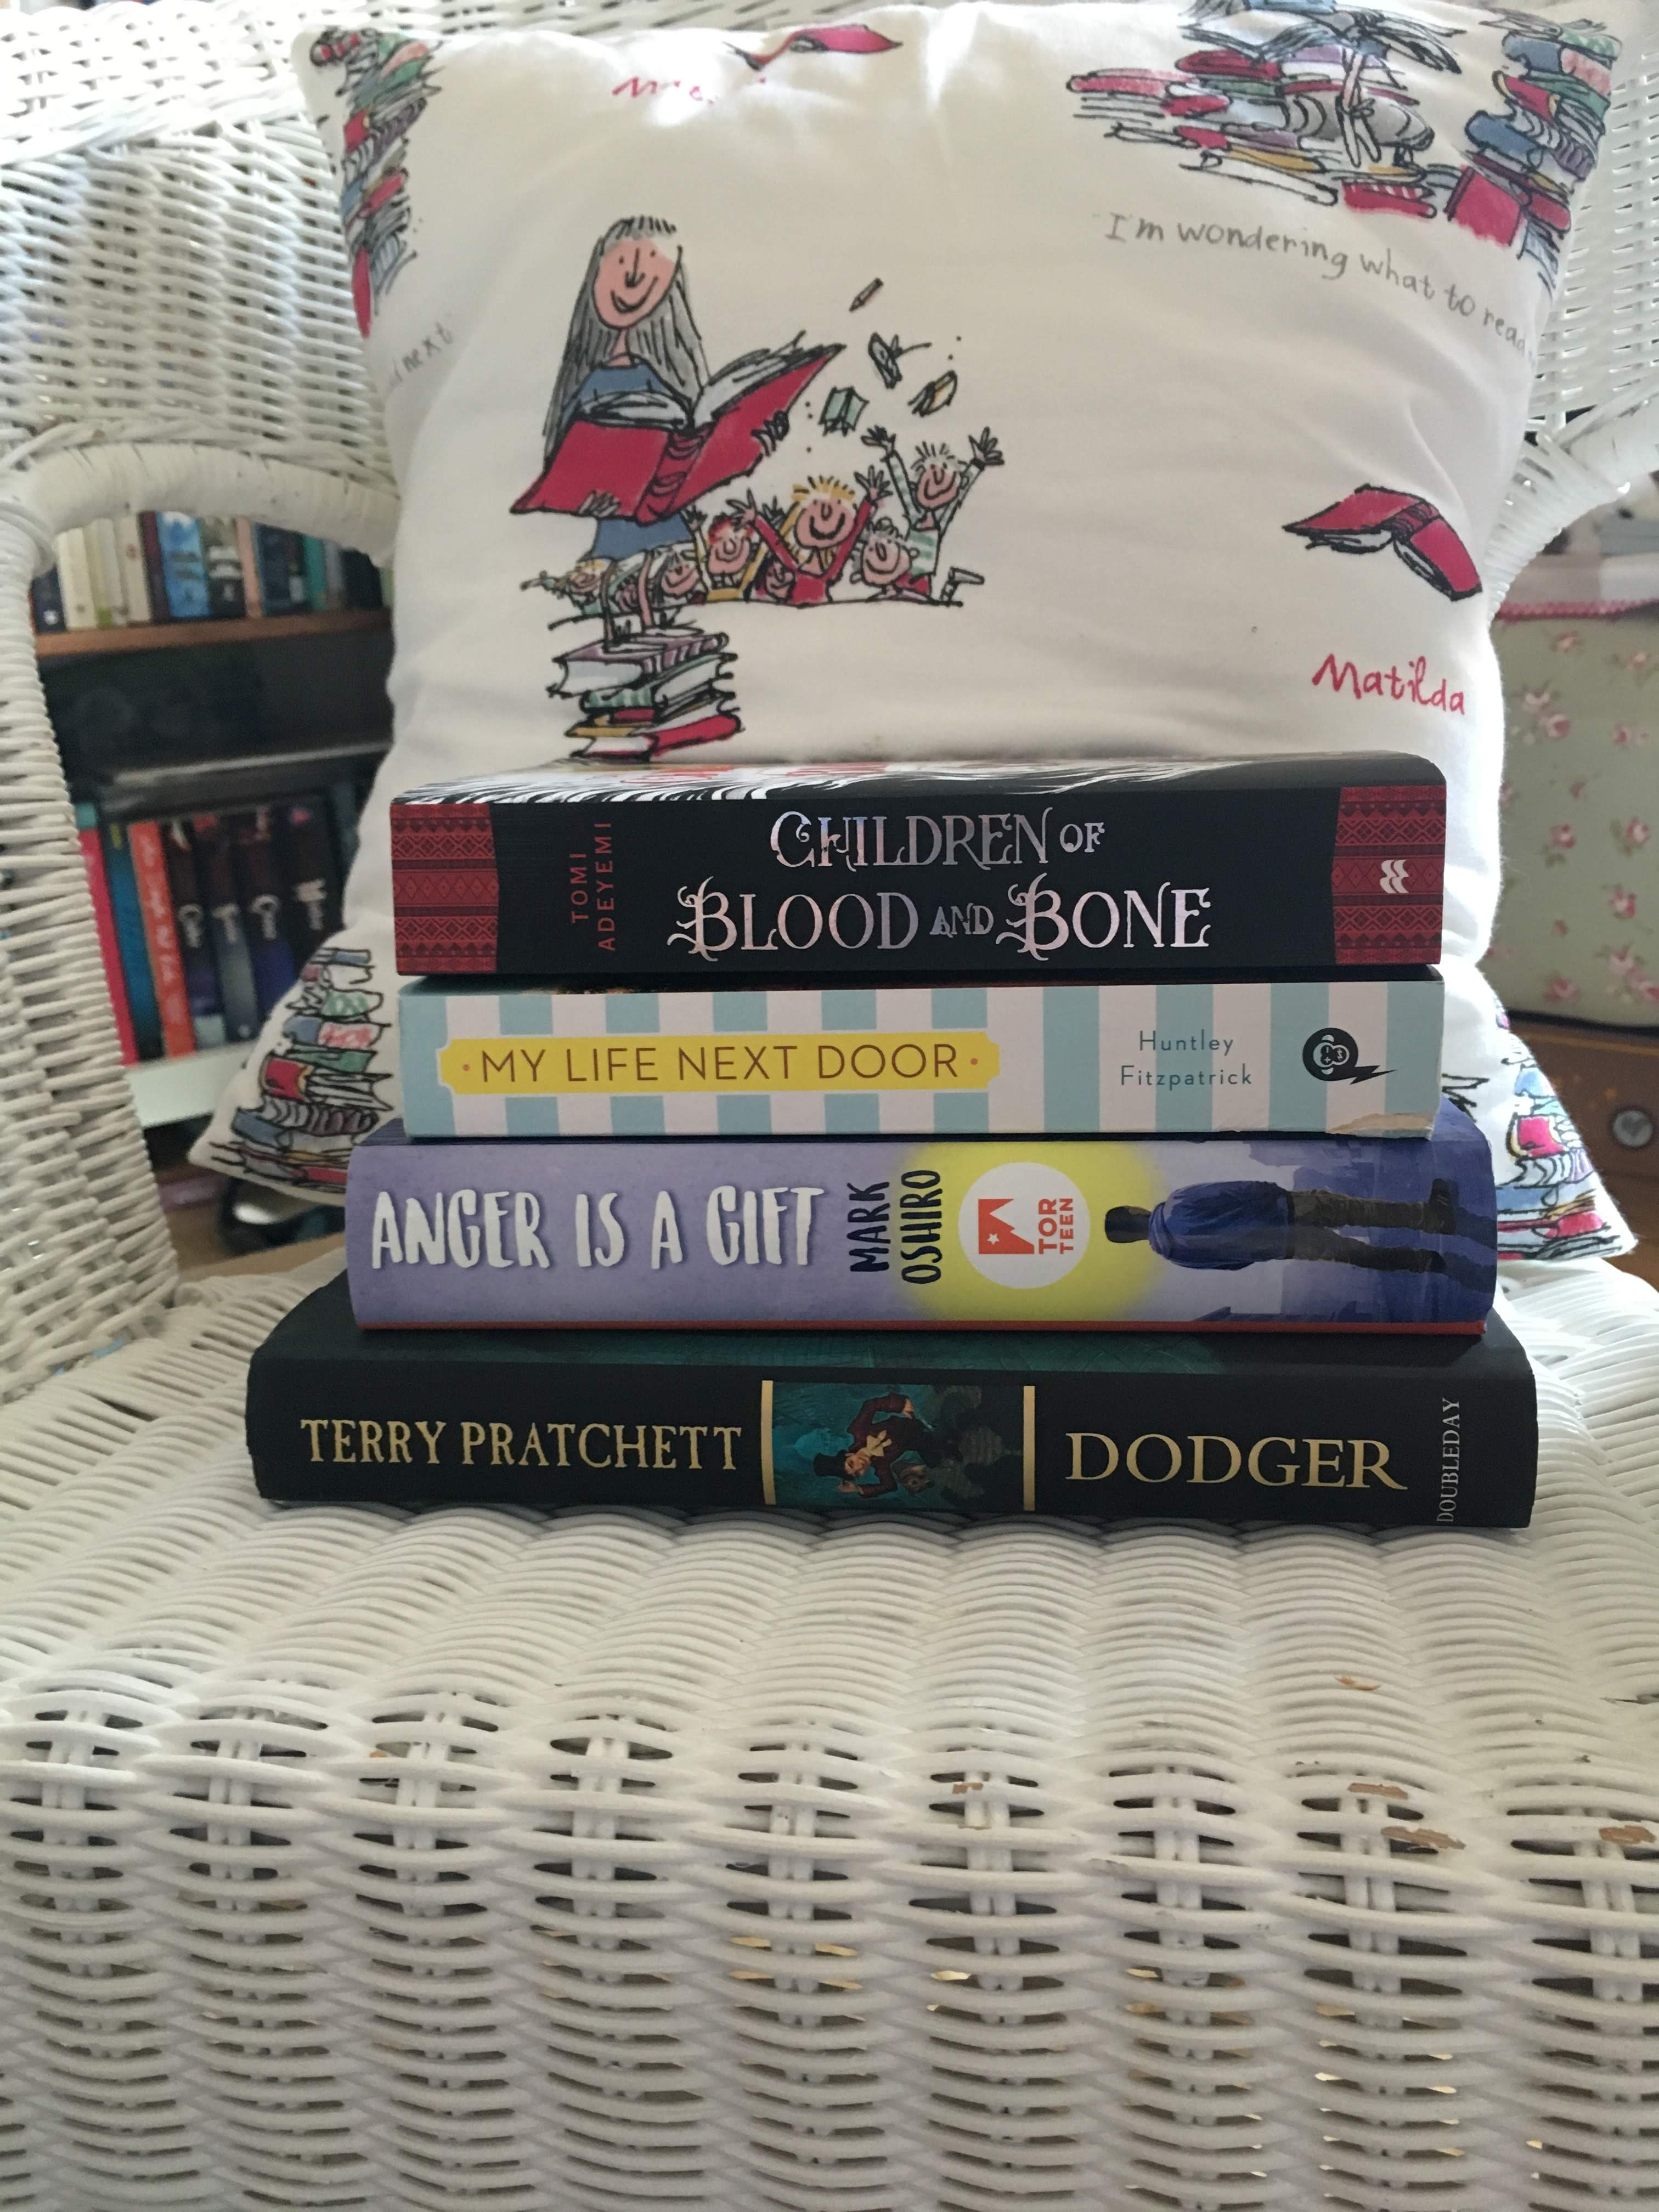 "Colour photograph of a stack of books on a white wicker chair, with a cushion showing Roald Dahl's character Matilda on it. The stack of books is, top to bottom, ""Children of Blood and Bone"", ""My Life Next Door"", ""Anger is a Gift"", and ""Dodger""."